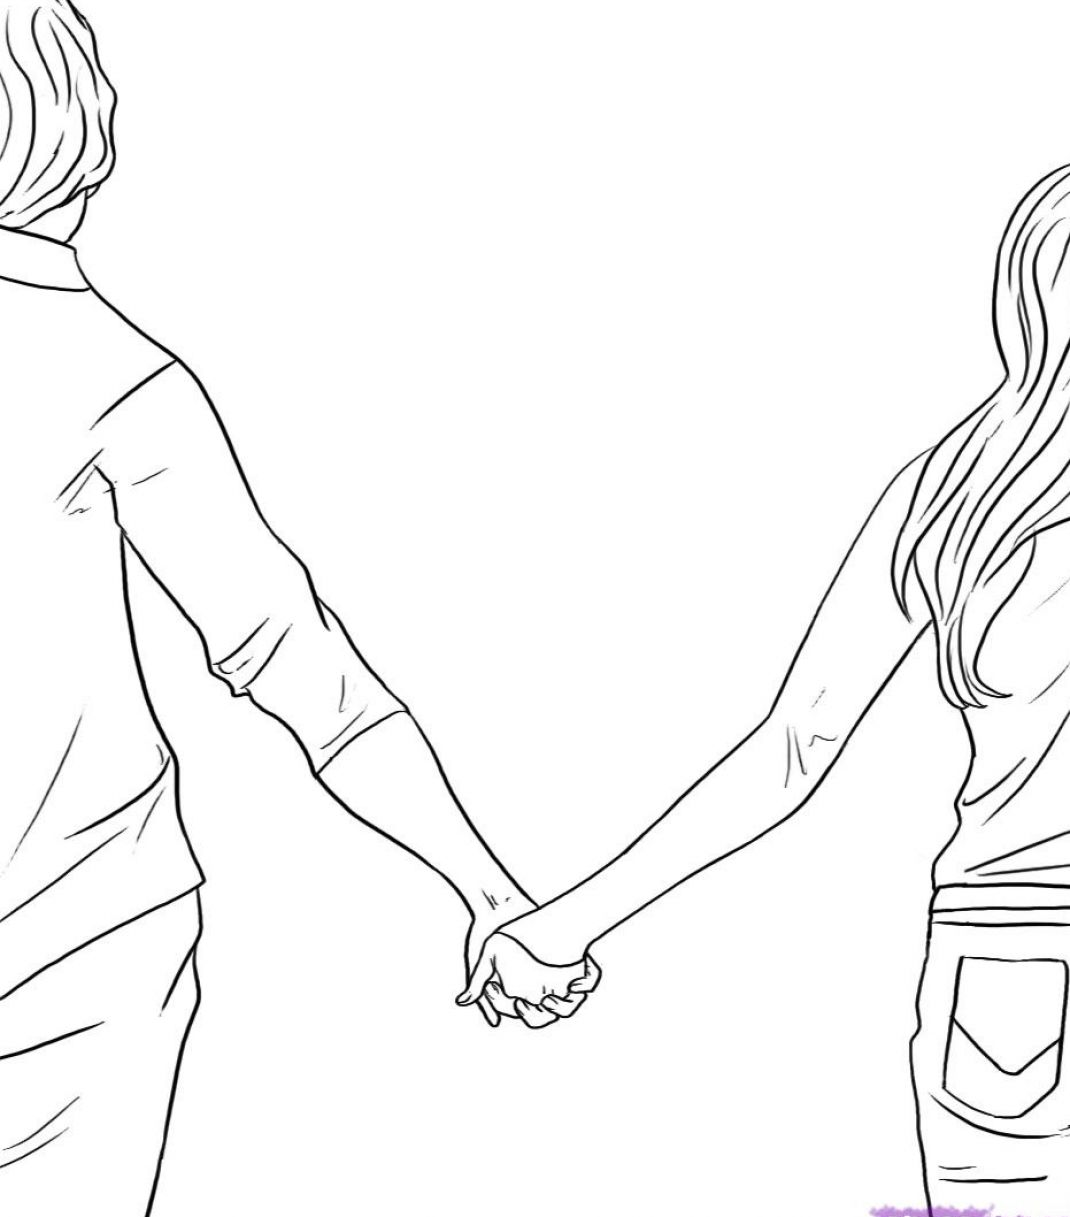 Love Each Other Coloring Page: How To Draw People In Love